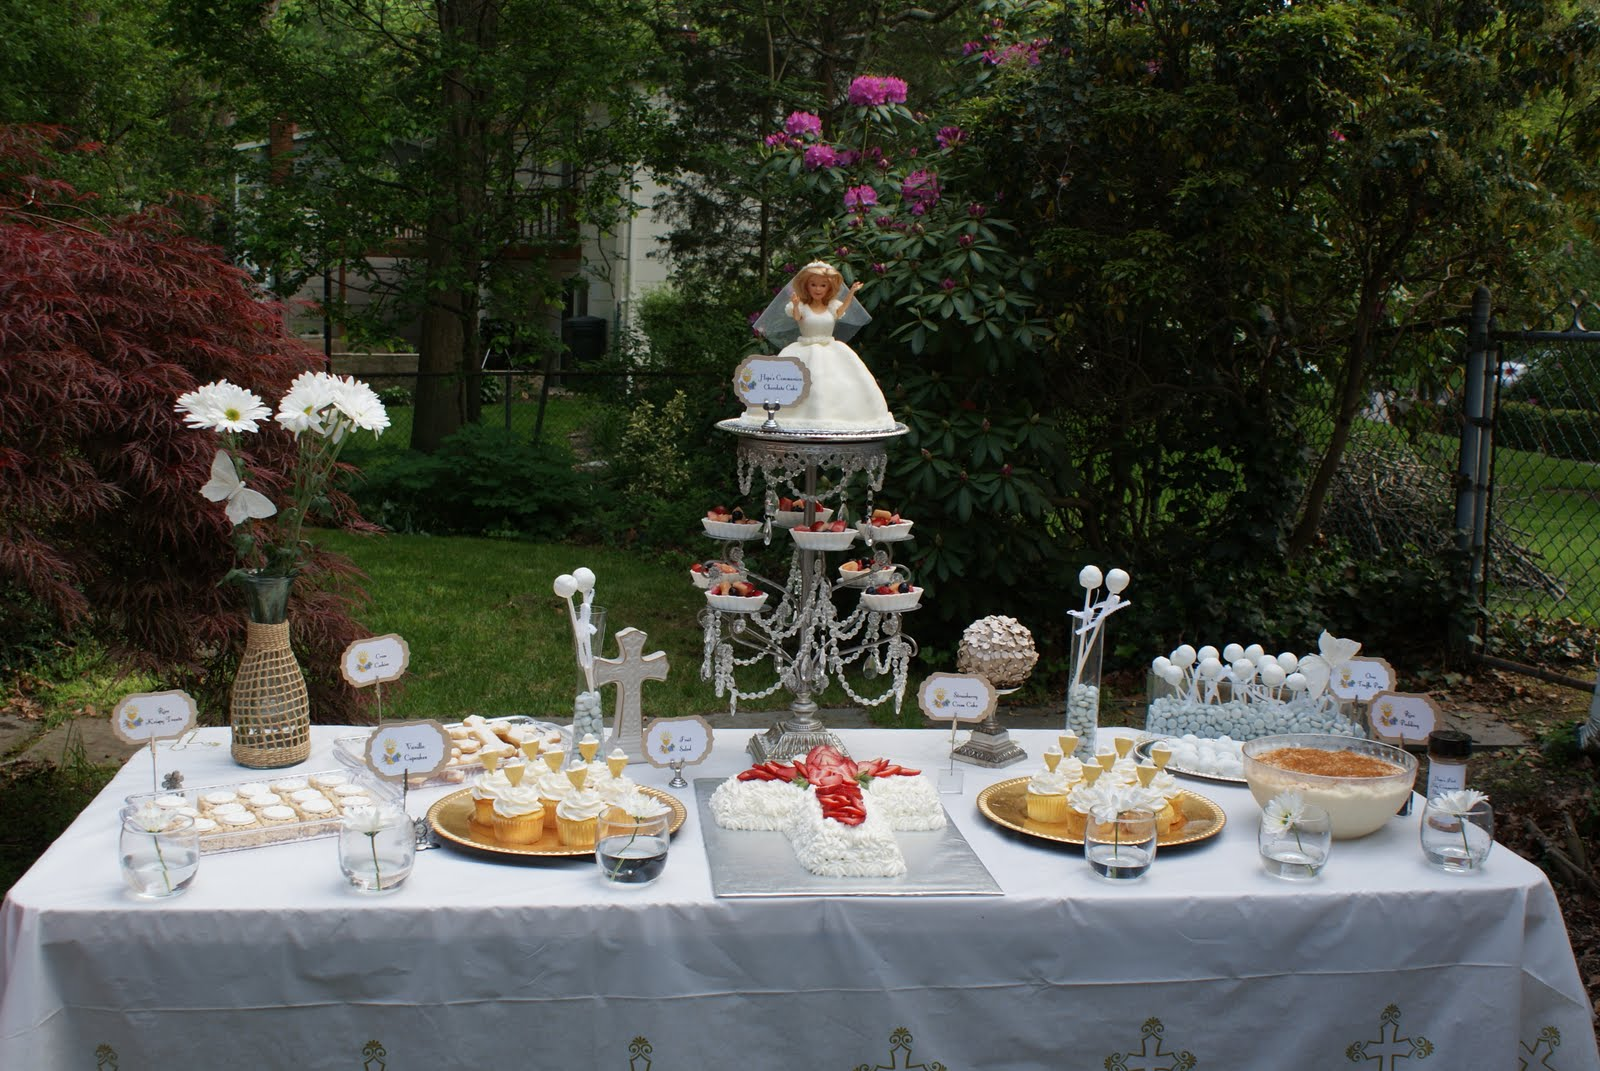 First communion cake table decoration ideas 50691 communio for 1st communion decoration ideas